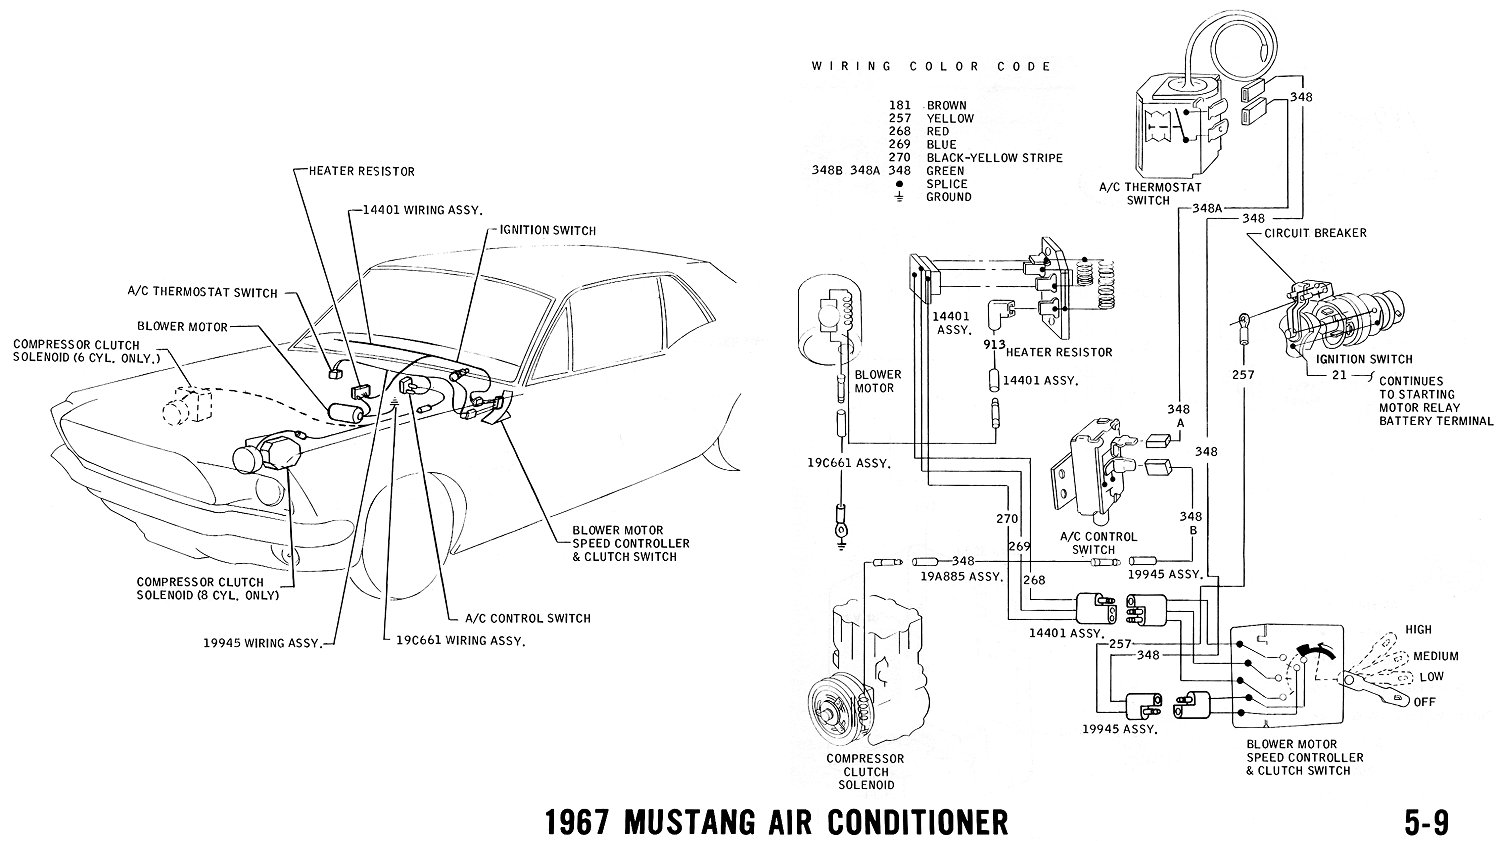 67ac 65 mustang dash wiring diagram 66 mustang wiper switch wiring 1969 mustang wiring diagram online at gsmx.co